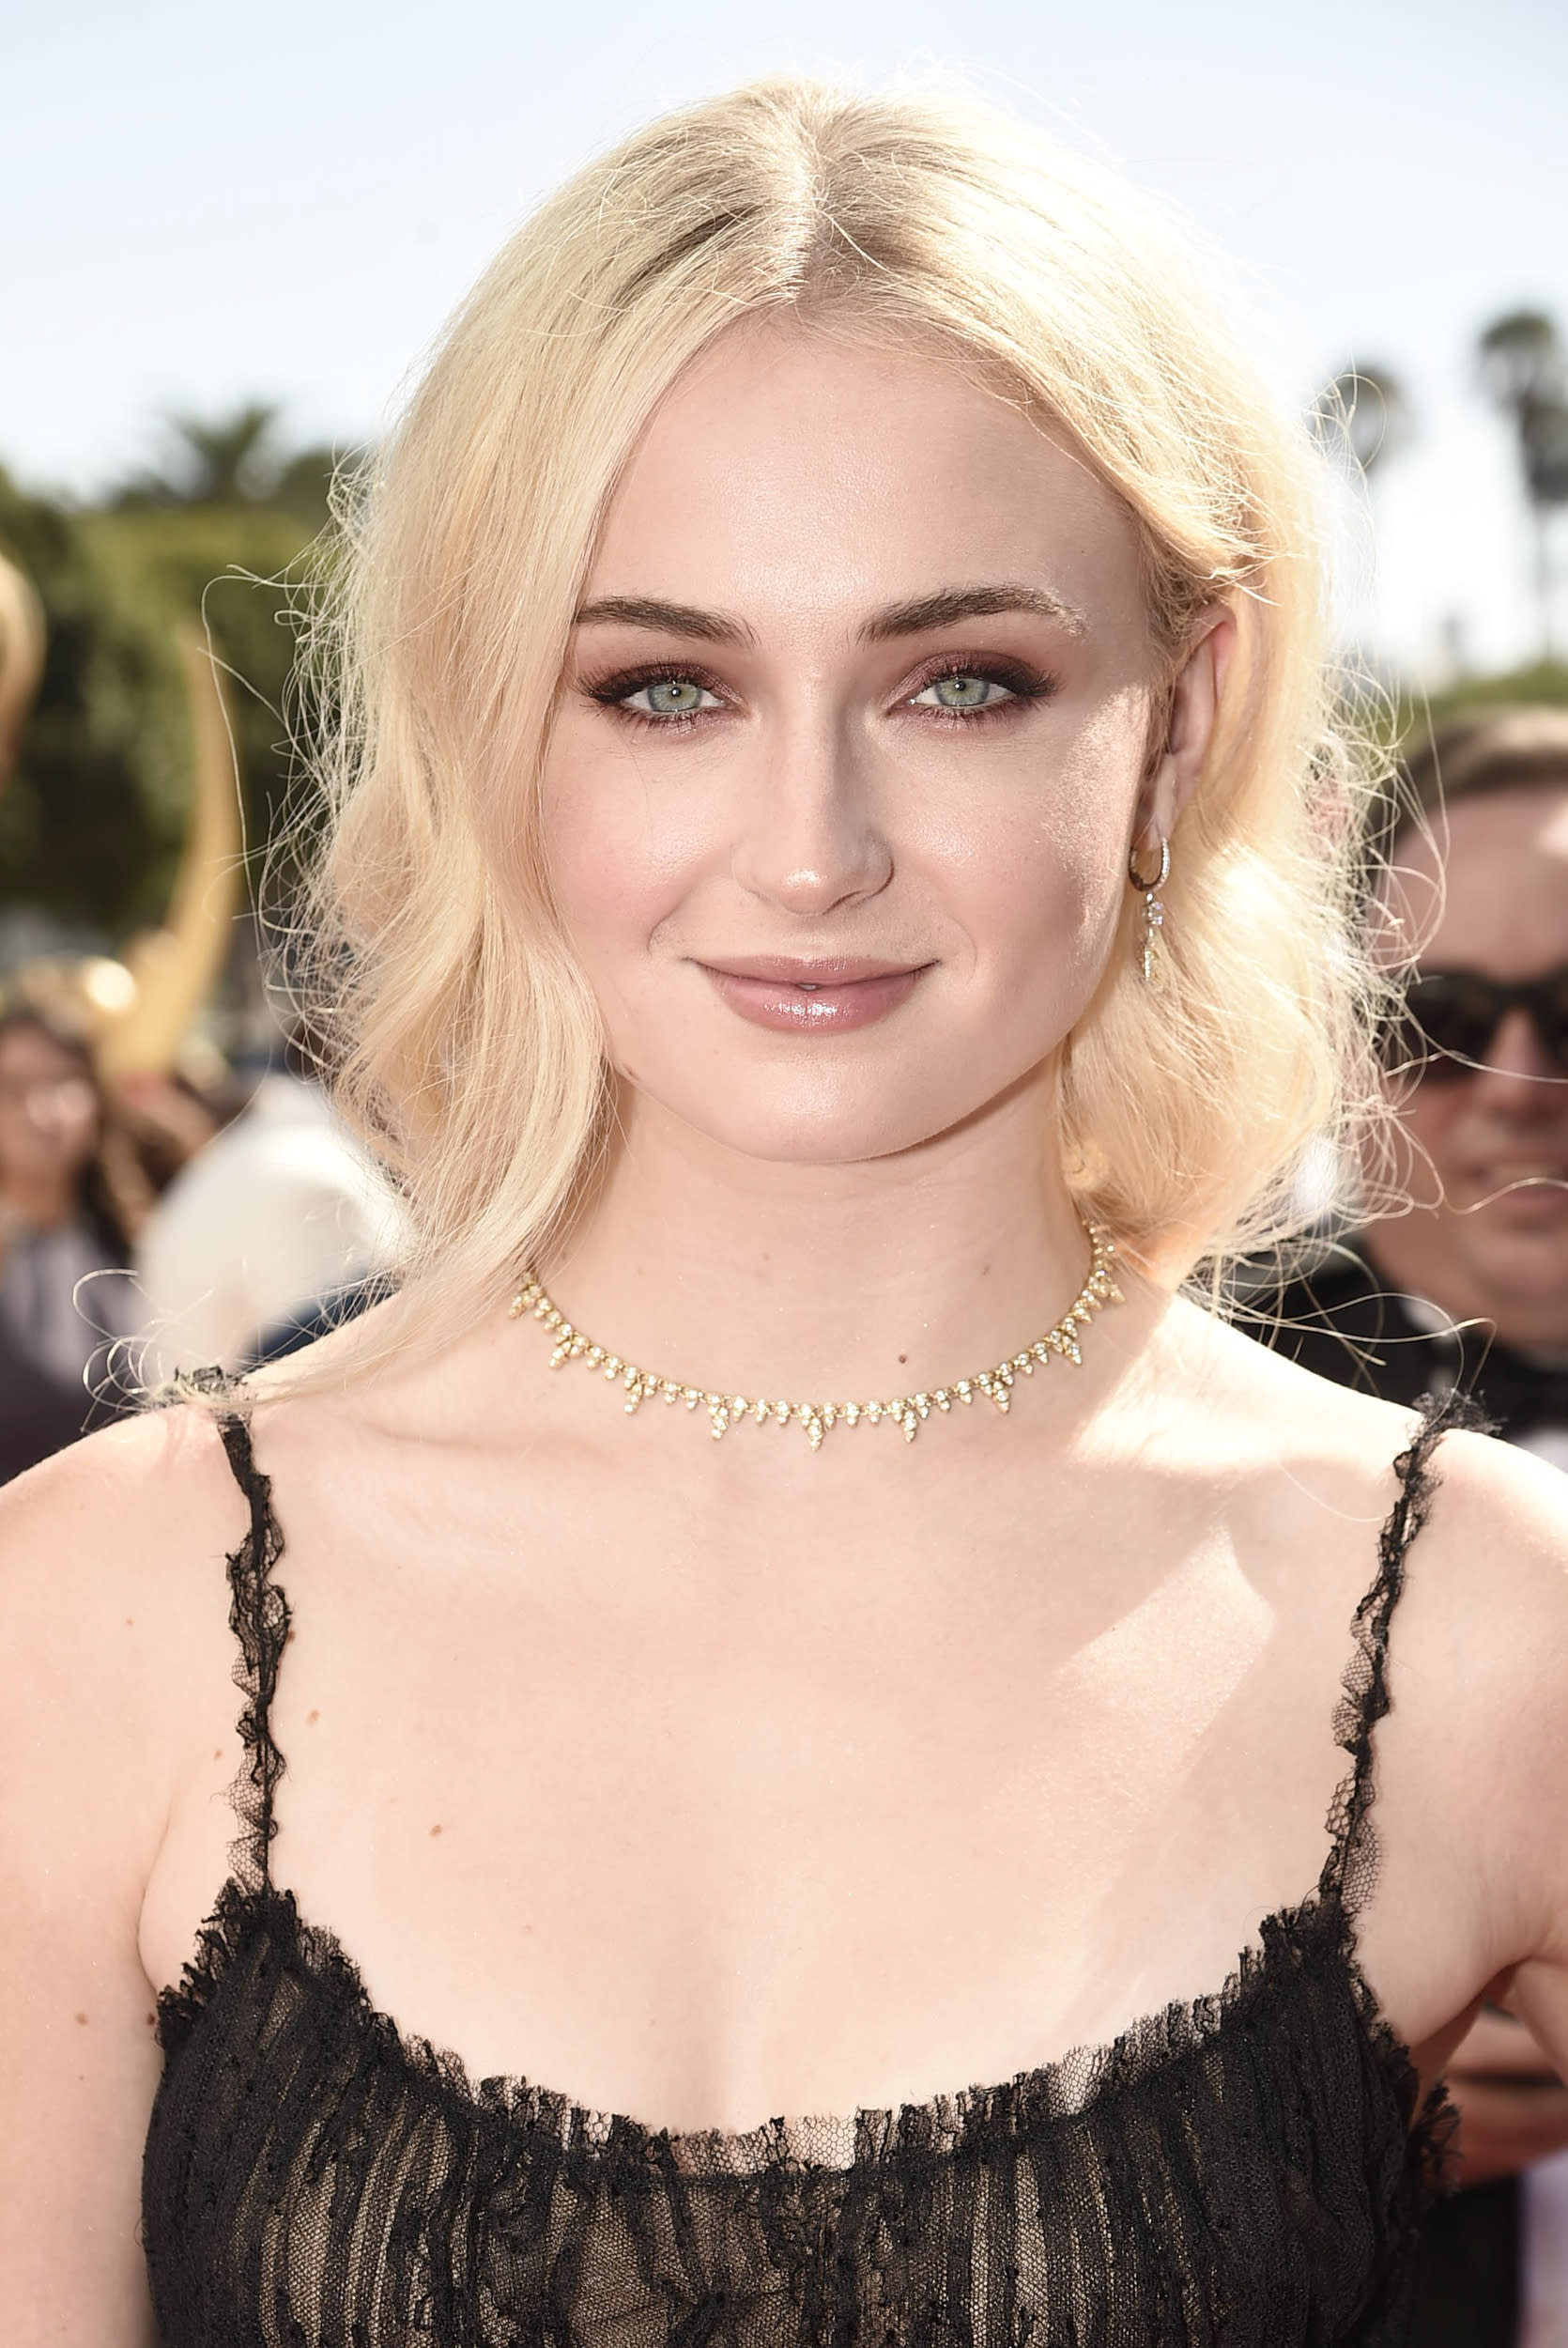 EXCLUSIVE - Sophie Turner arrives at the 68th Primetime Emmy Awards on Sunday, Sept. 18, 2016, at the Microsoft Theater in Los Angeles. (Photo by Dan Steinberg/Invision for the Television Academy/AP Images)